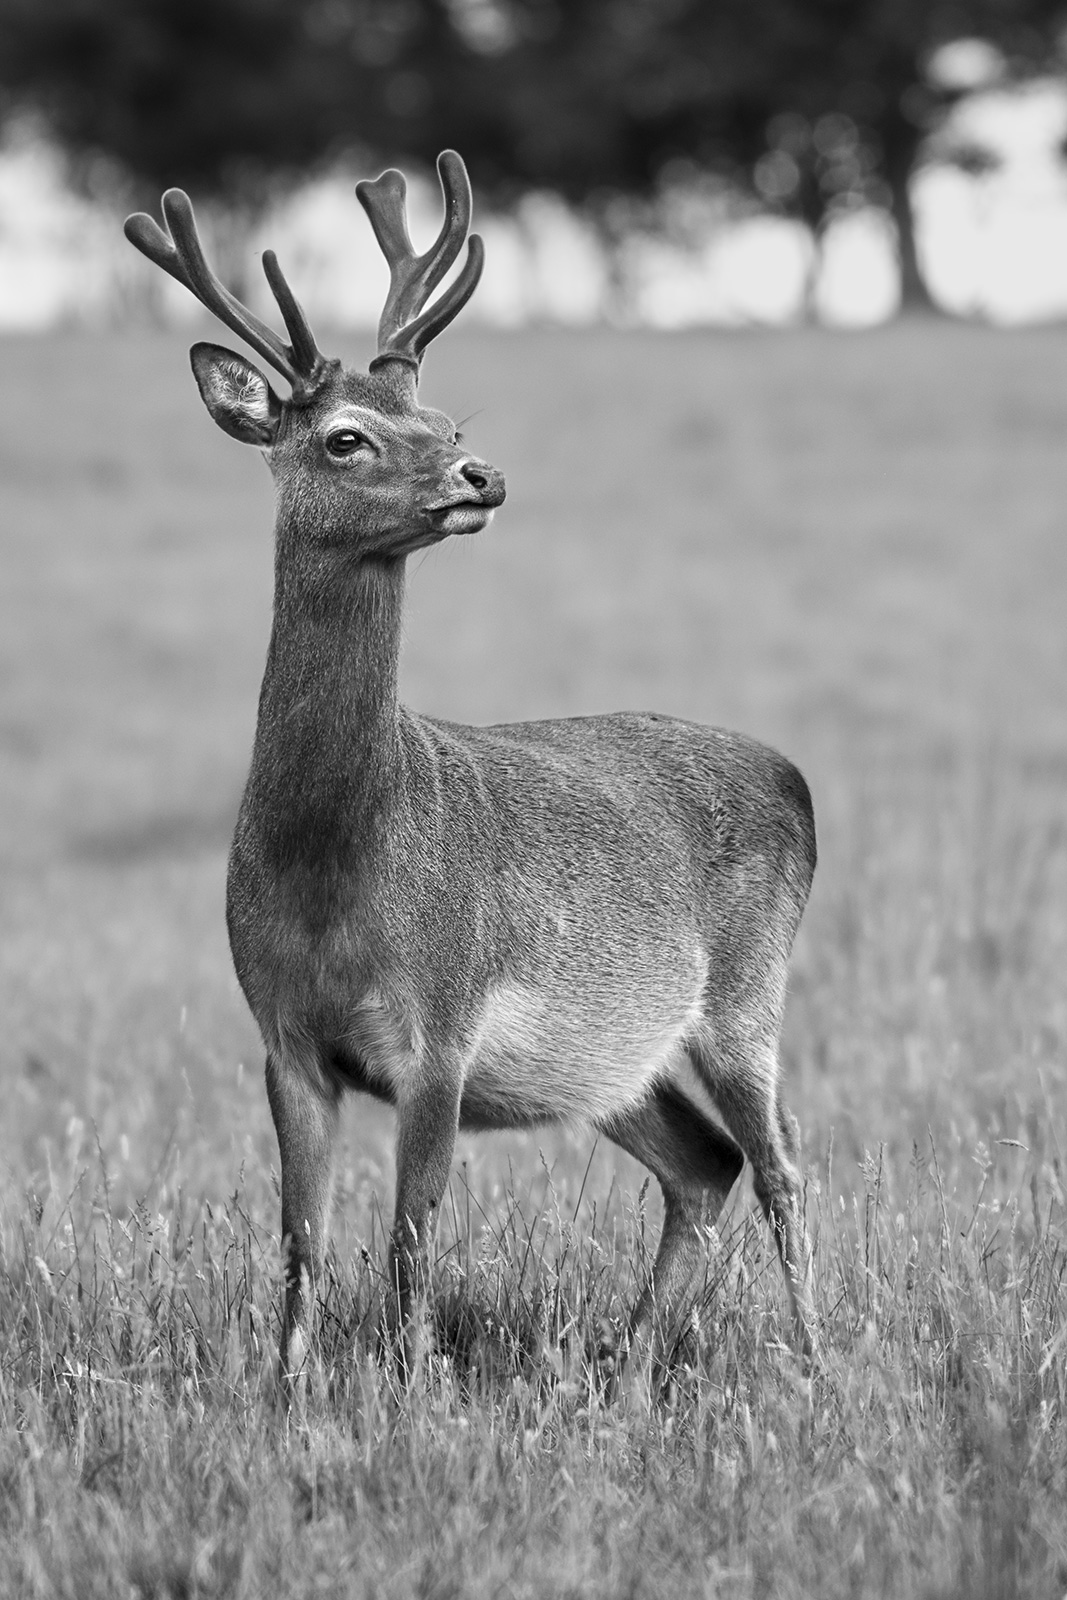 Fallow deer stag with green antlers standing in meadow grass, rural monochrome portrait Woodmancote West Sussex UK ©P. Maton 2019 eyeteeth.net